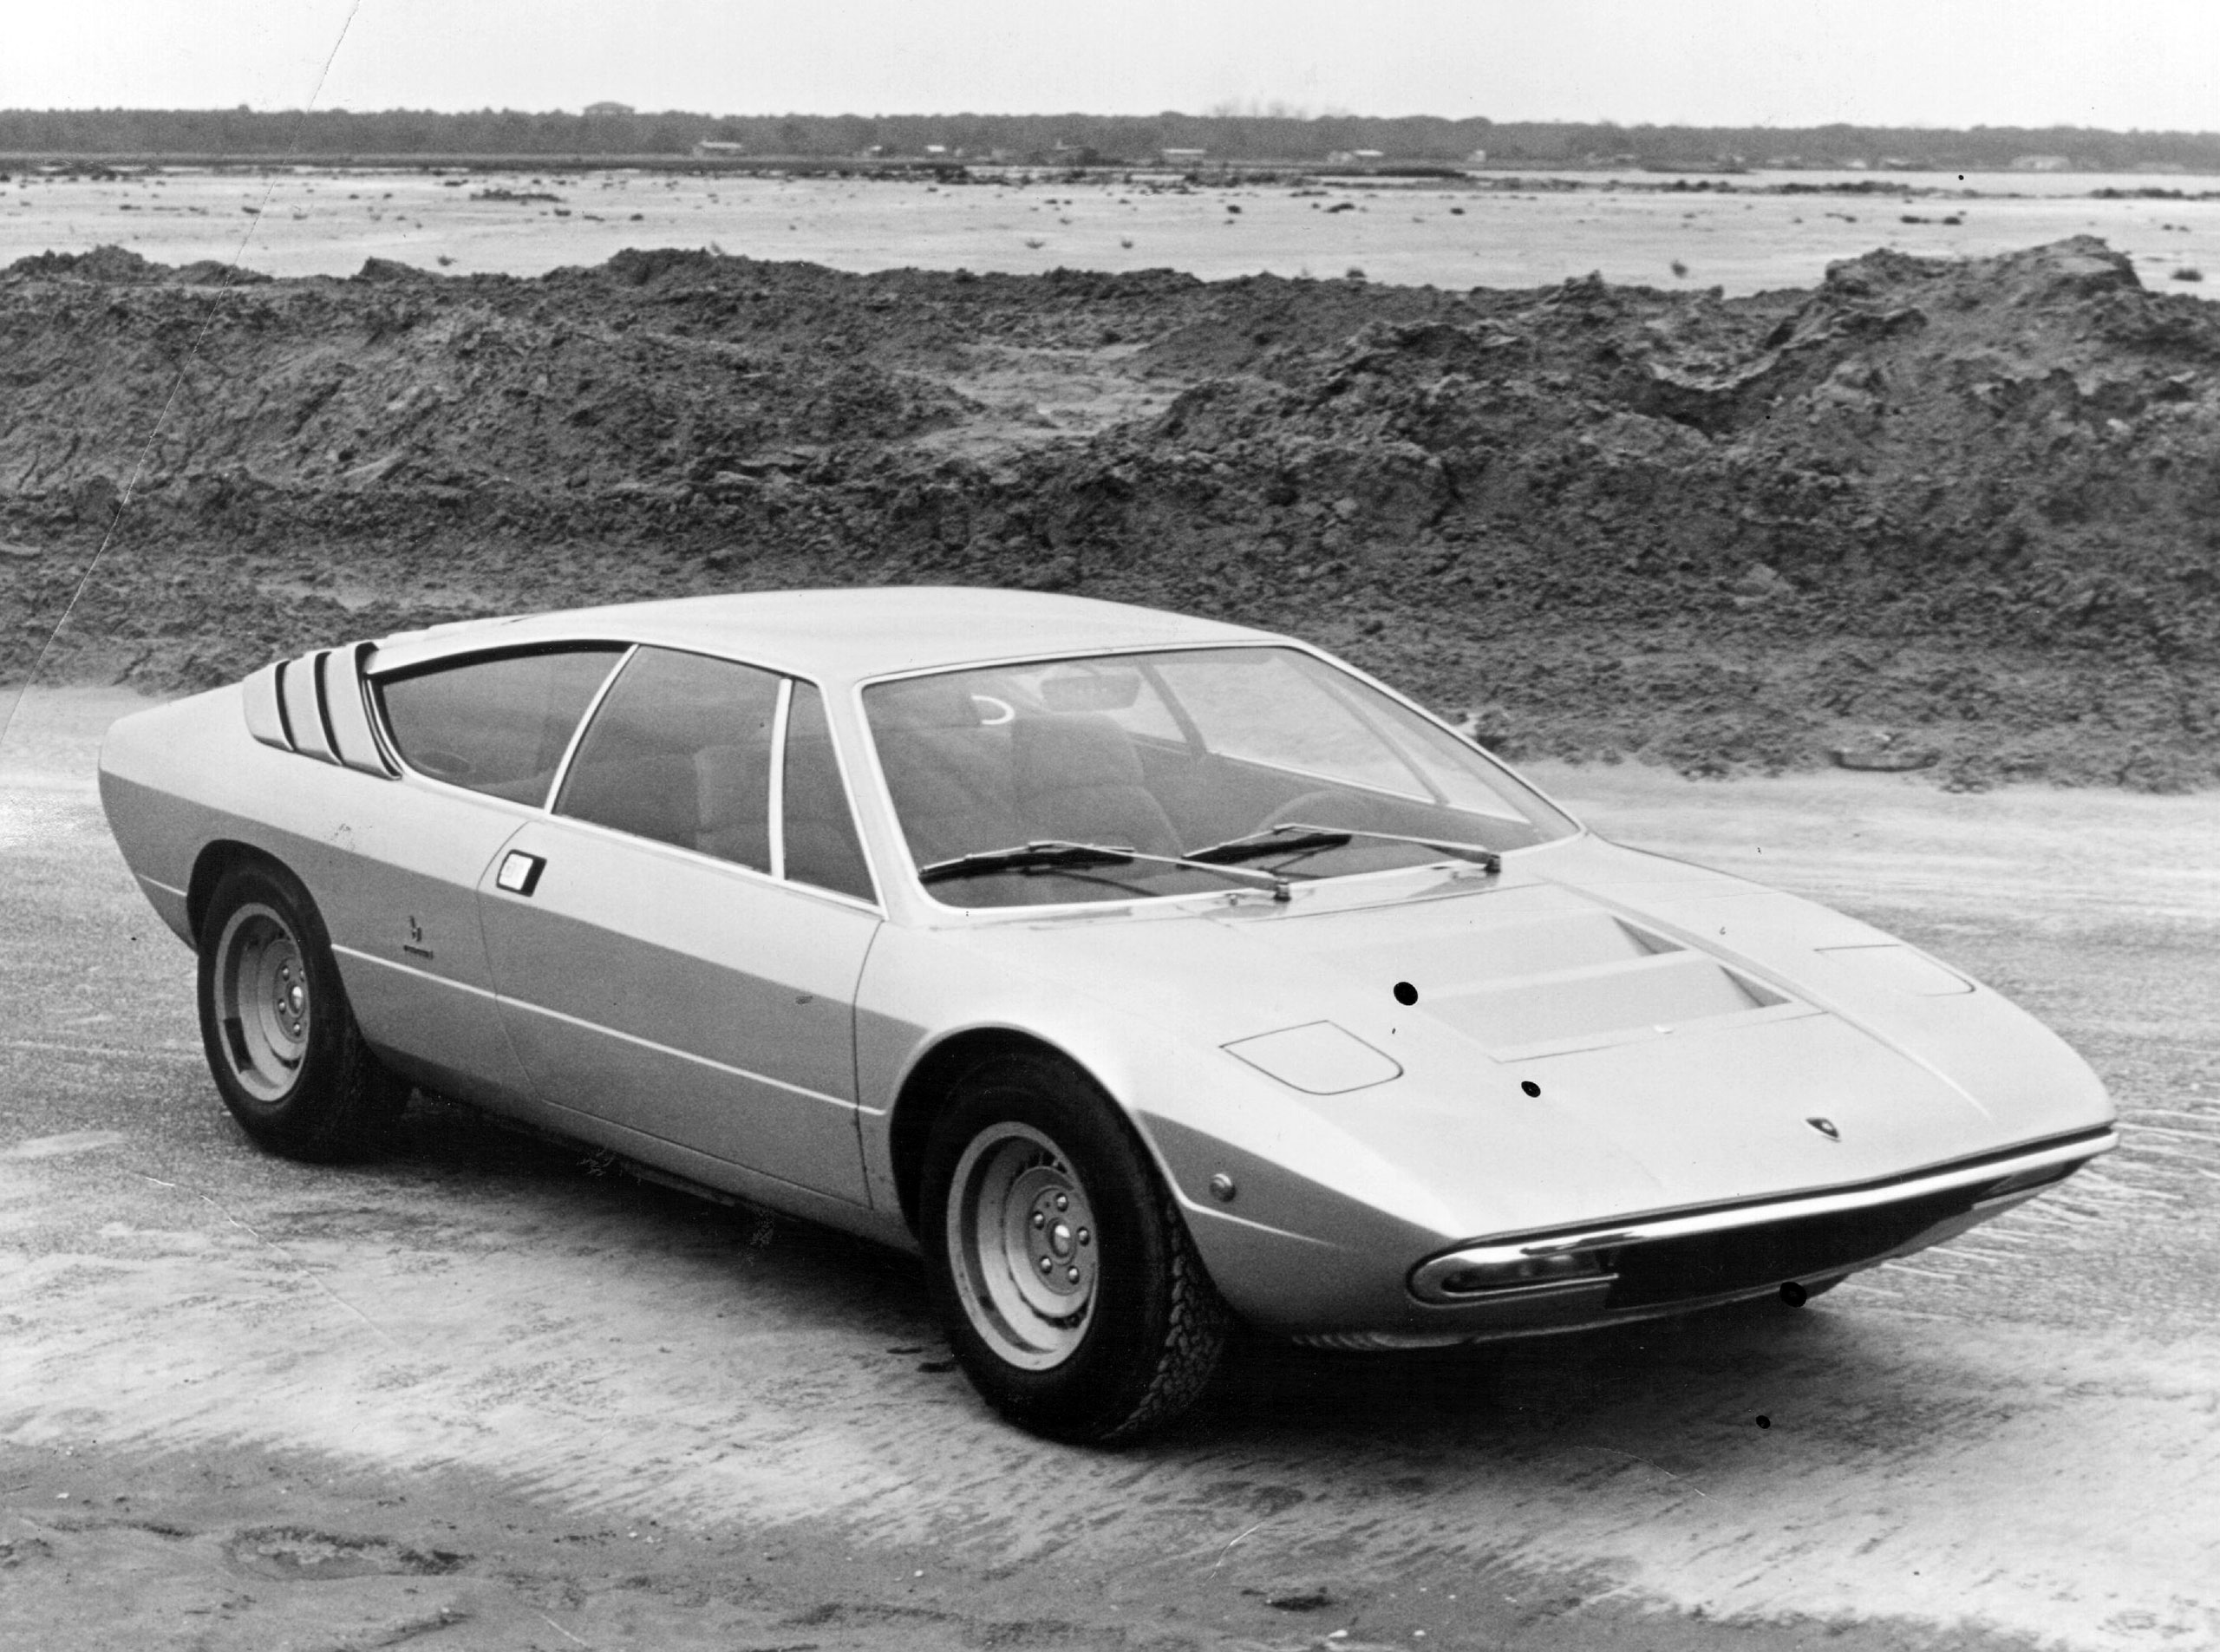 Lamborghini P250 Urraco 2+2 V8 sports car styled by Bertone and priced at £5500 in 1972.